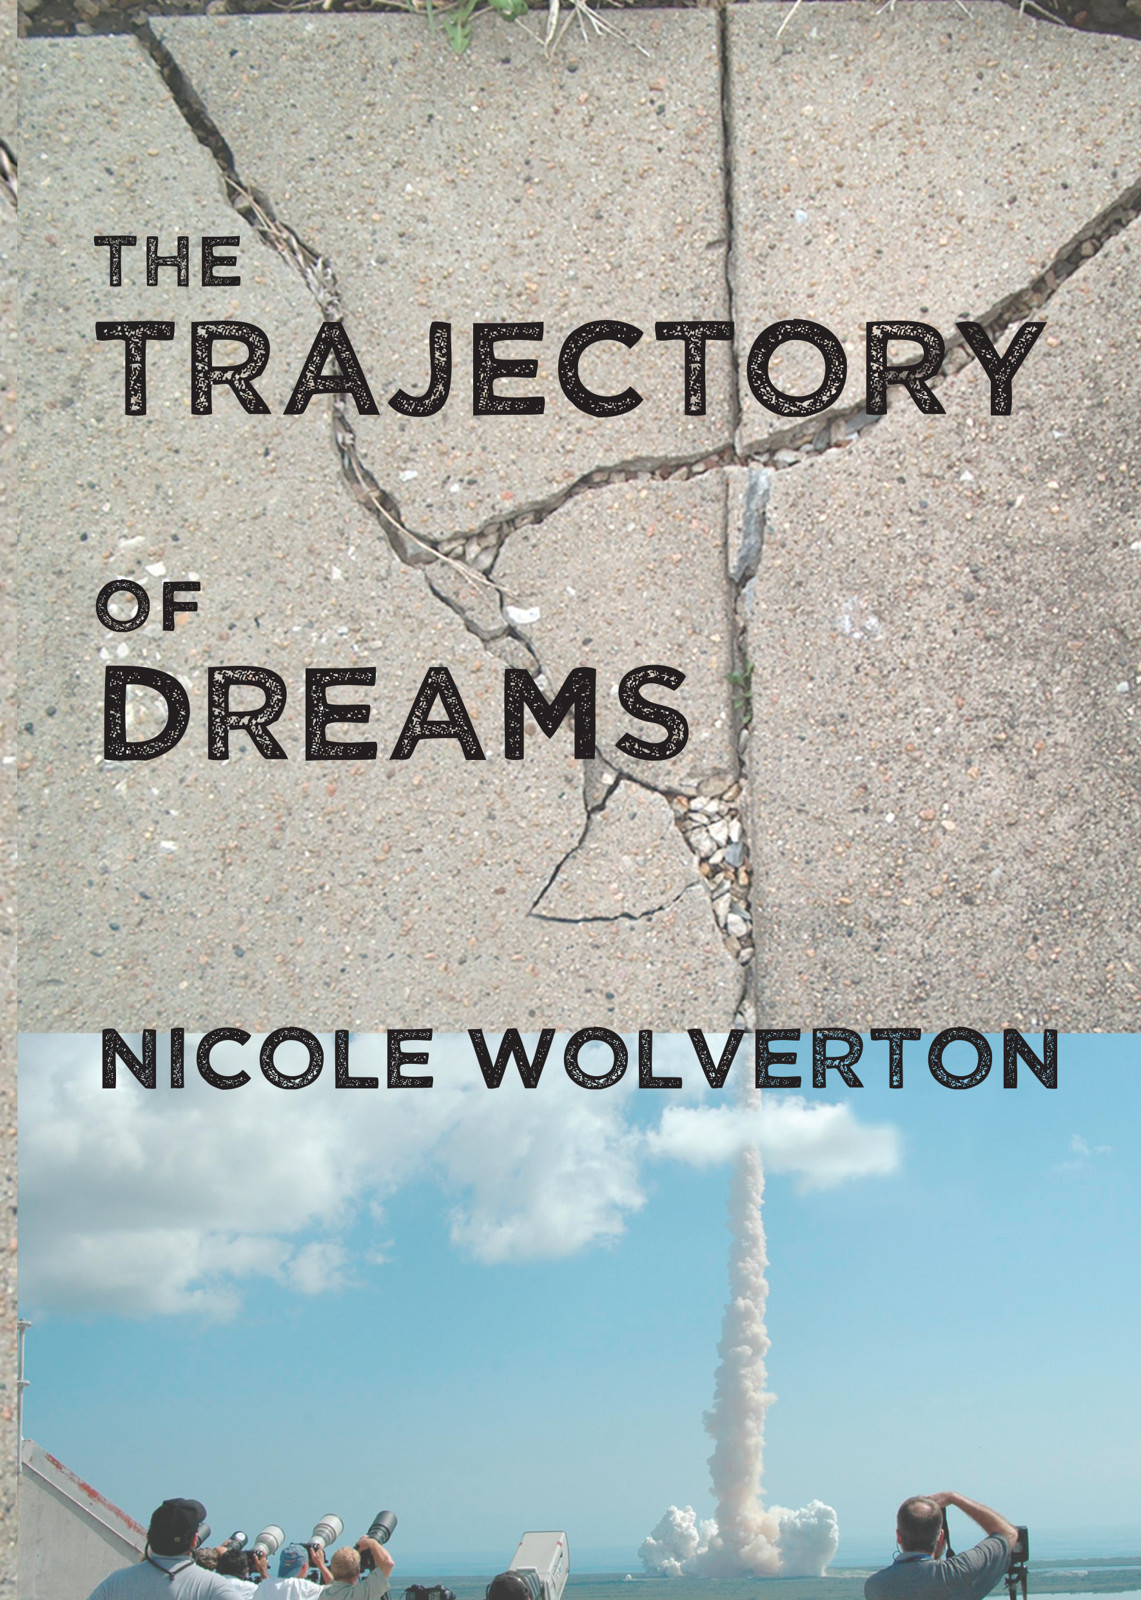 The Trajectory of Dreams